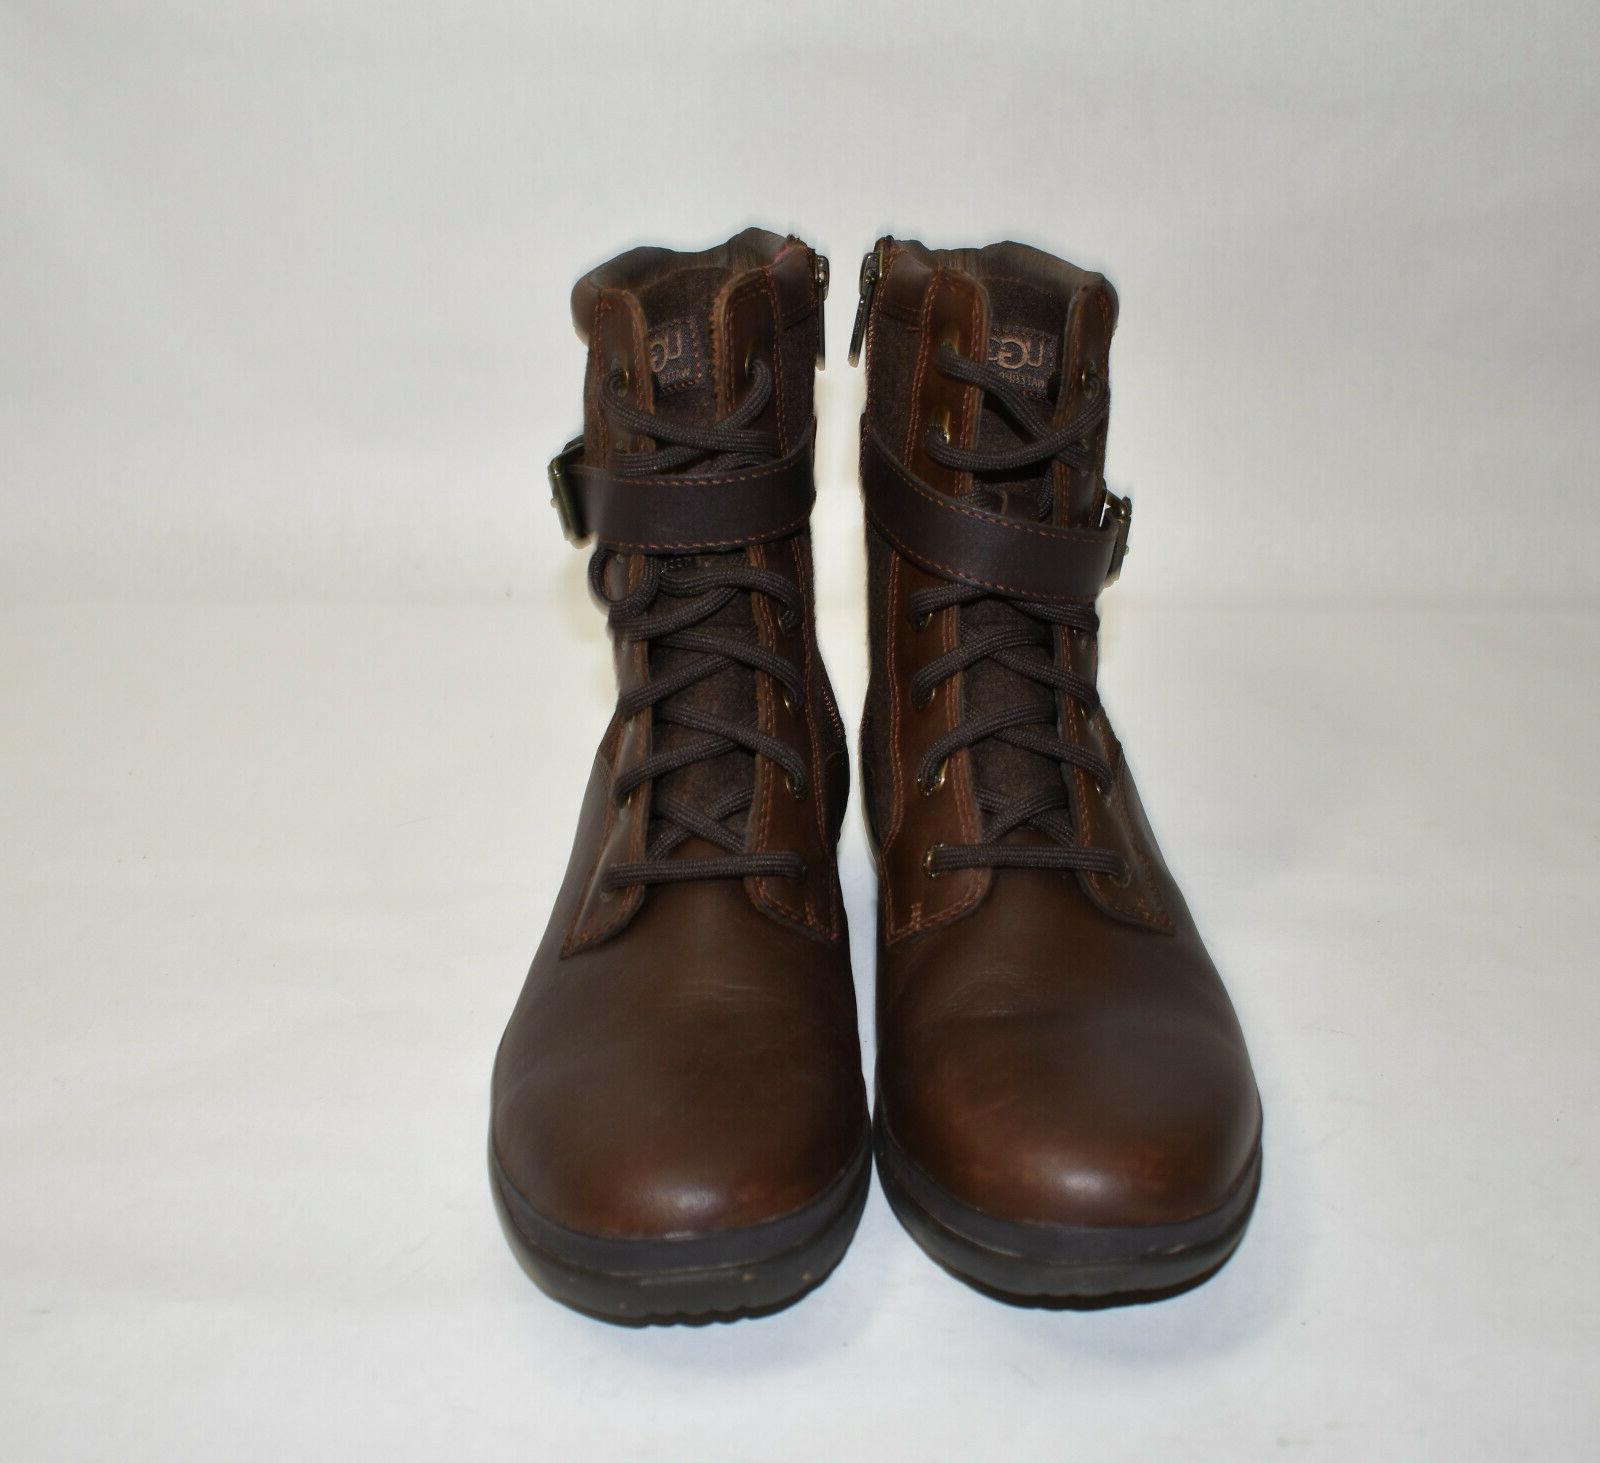 New! Kesey Waterproof Boot Brown Leather 9